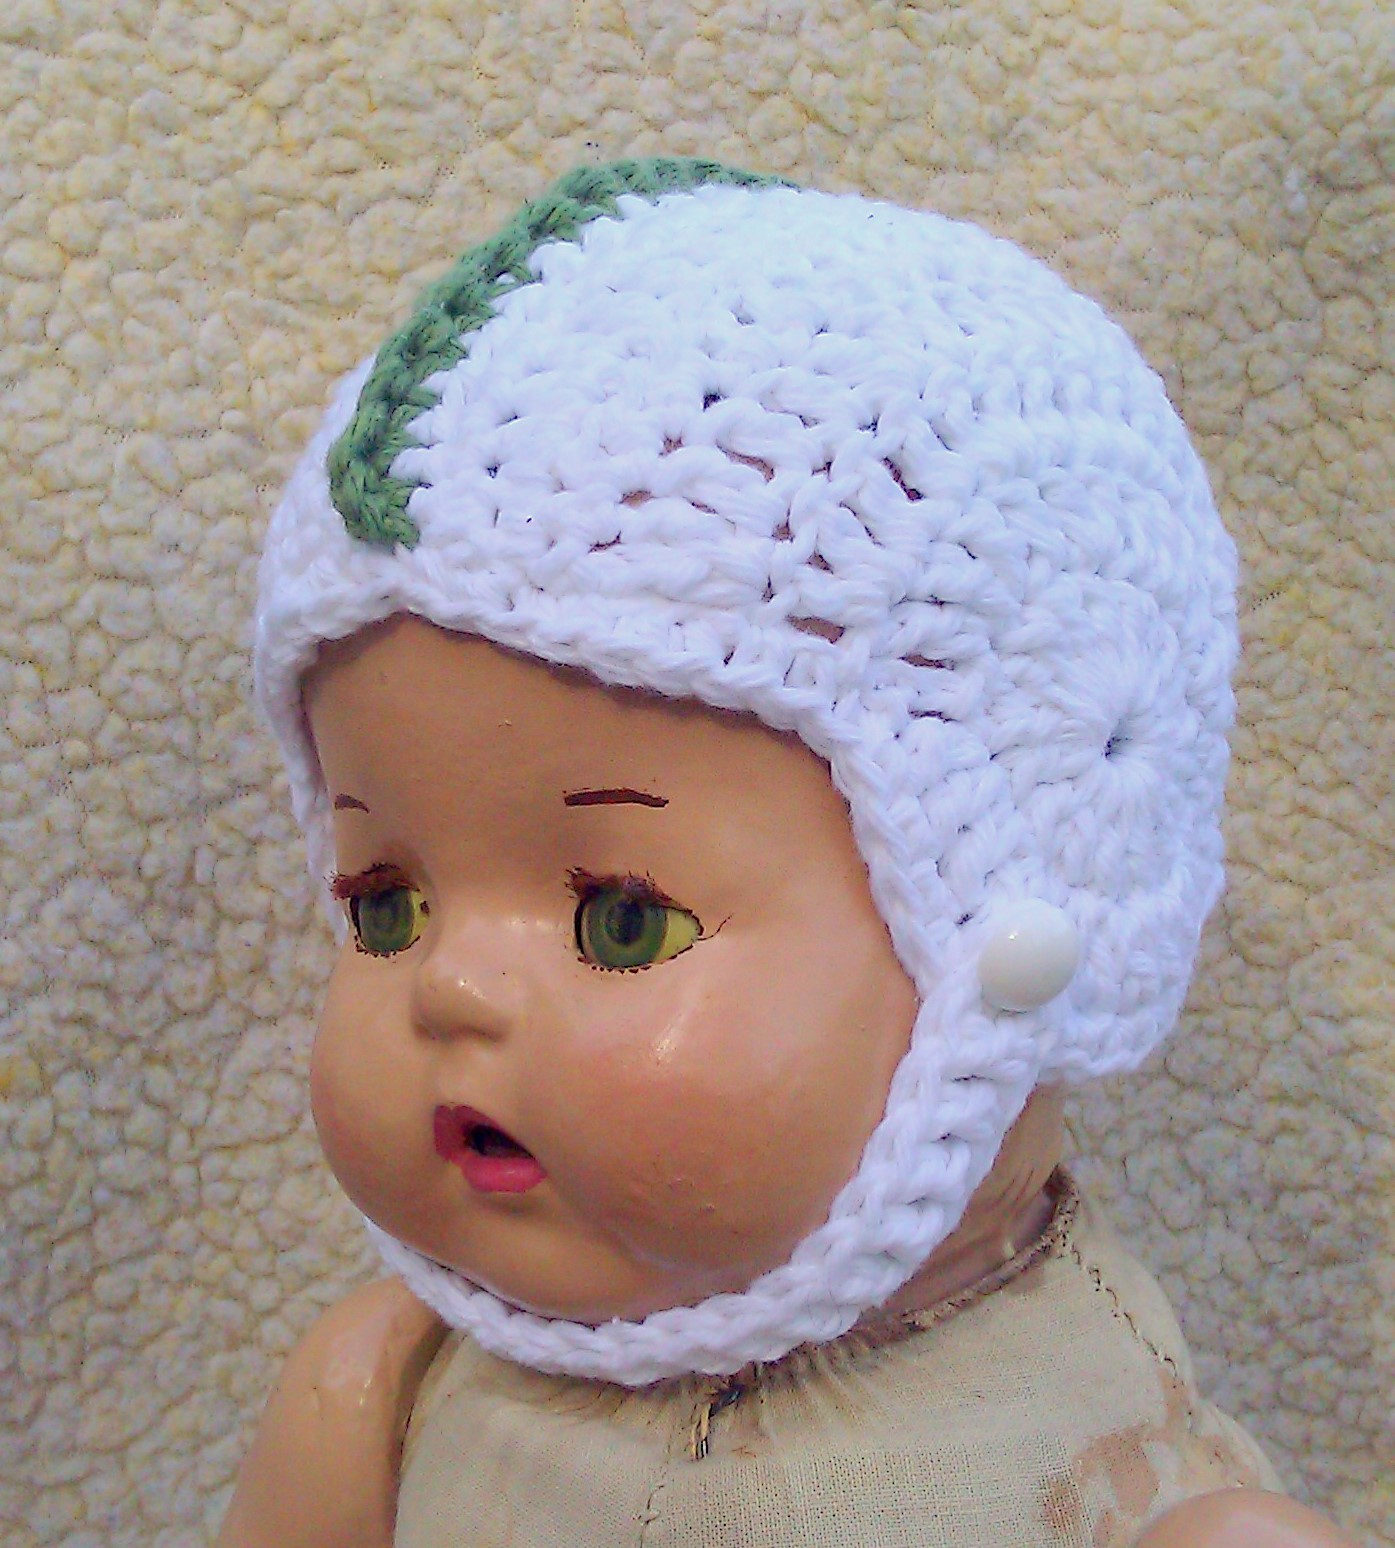 Free Crochet Patterns For Babies : Breezybot: FREE PATTERN - Baby crochet football helmet!